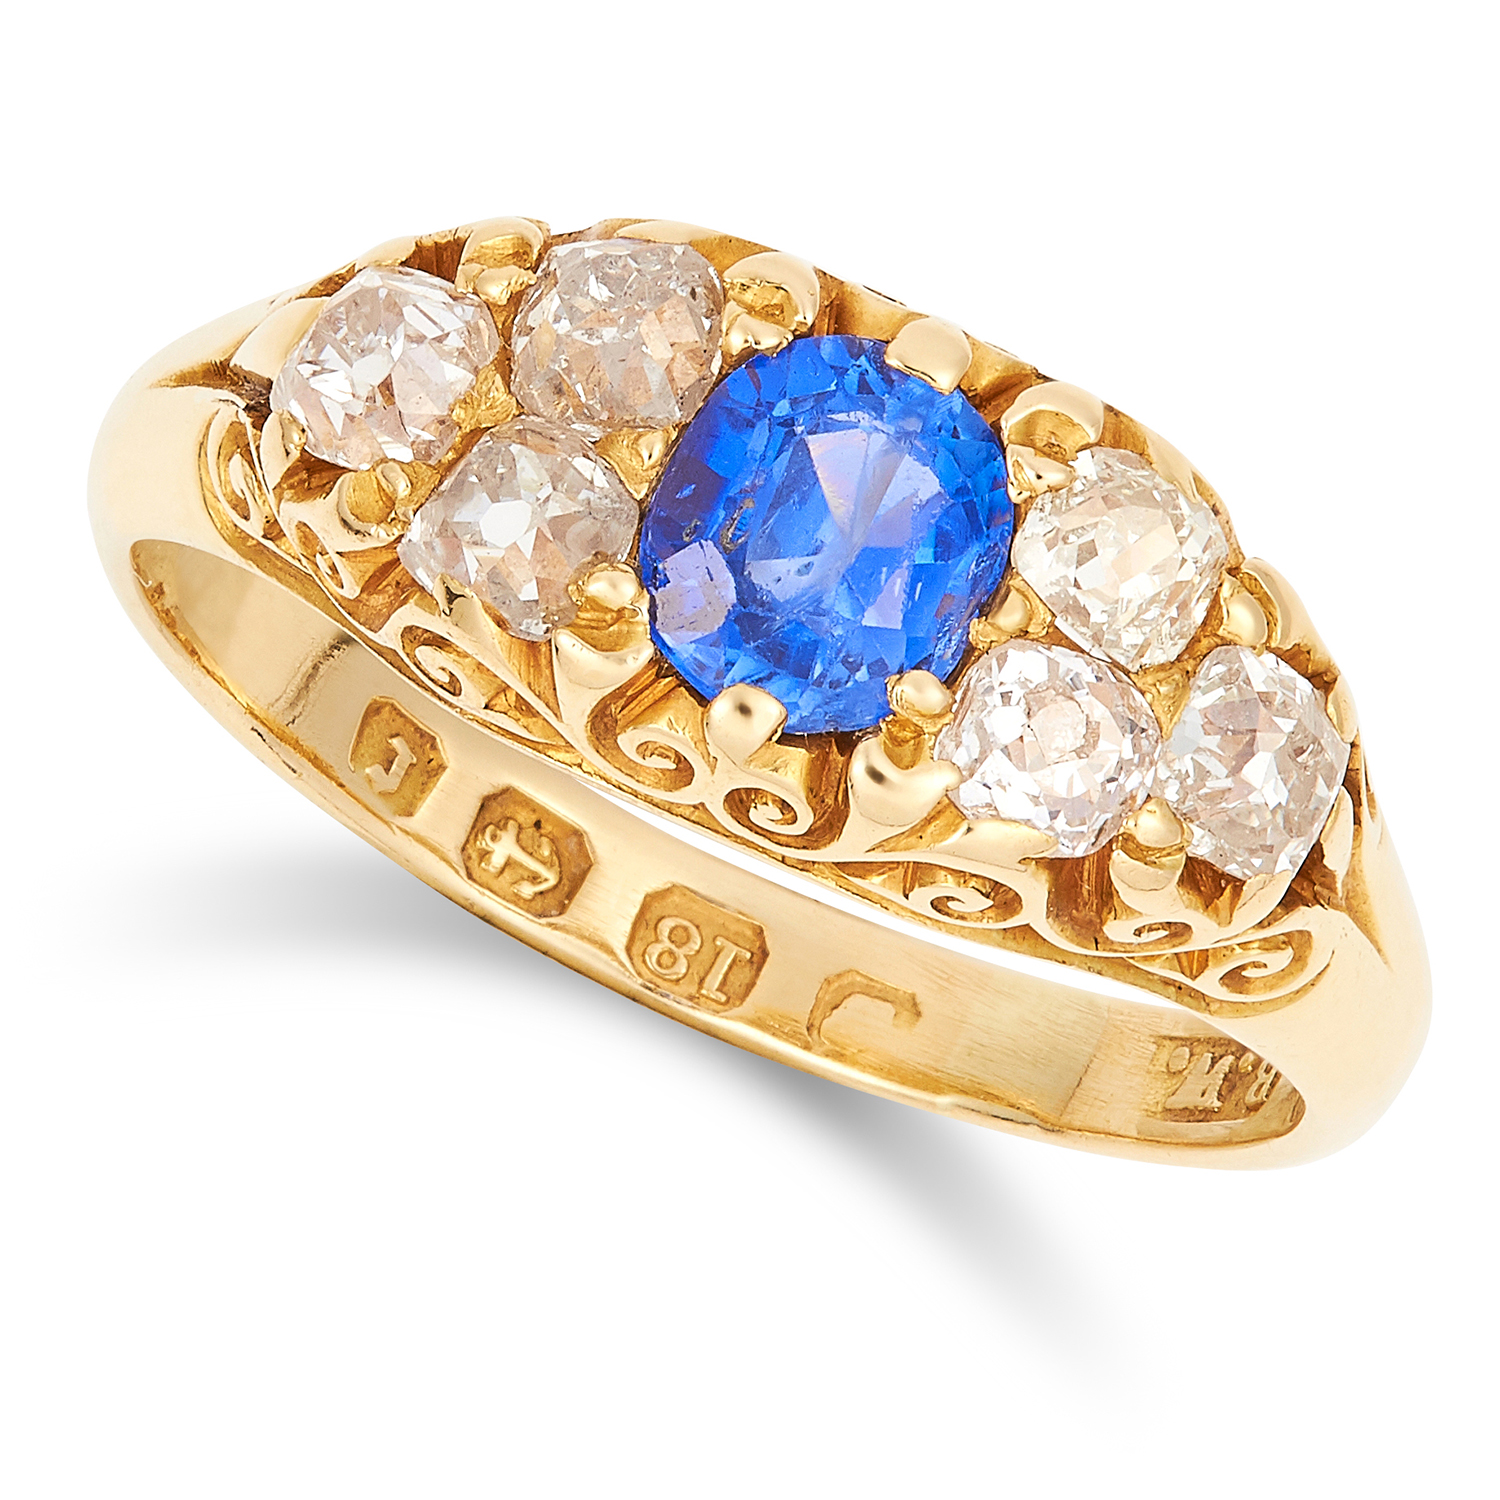 Los 17 - ANTIQUE VICTORIAN SAPPHIRE AND DIAMOND RING, 1891 set with an oval cut sapphire of 0.80 carats and